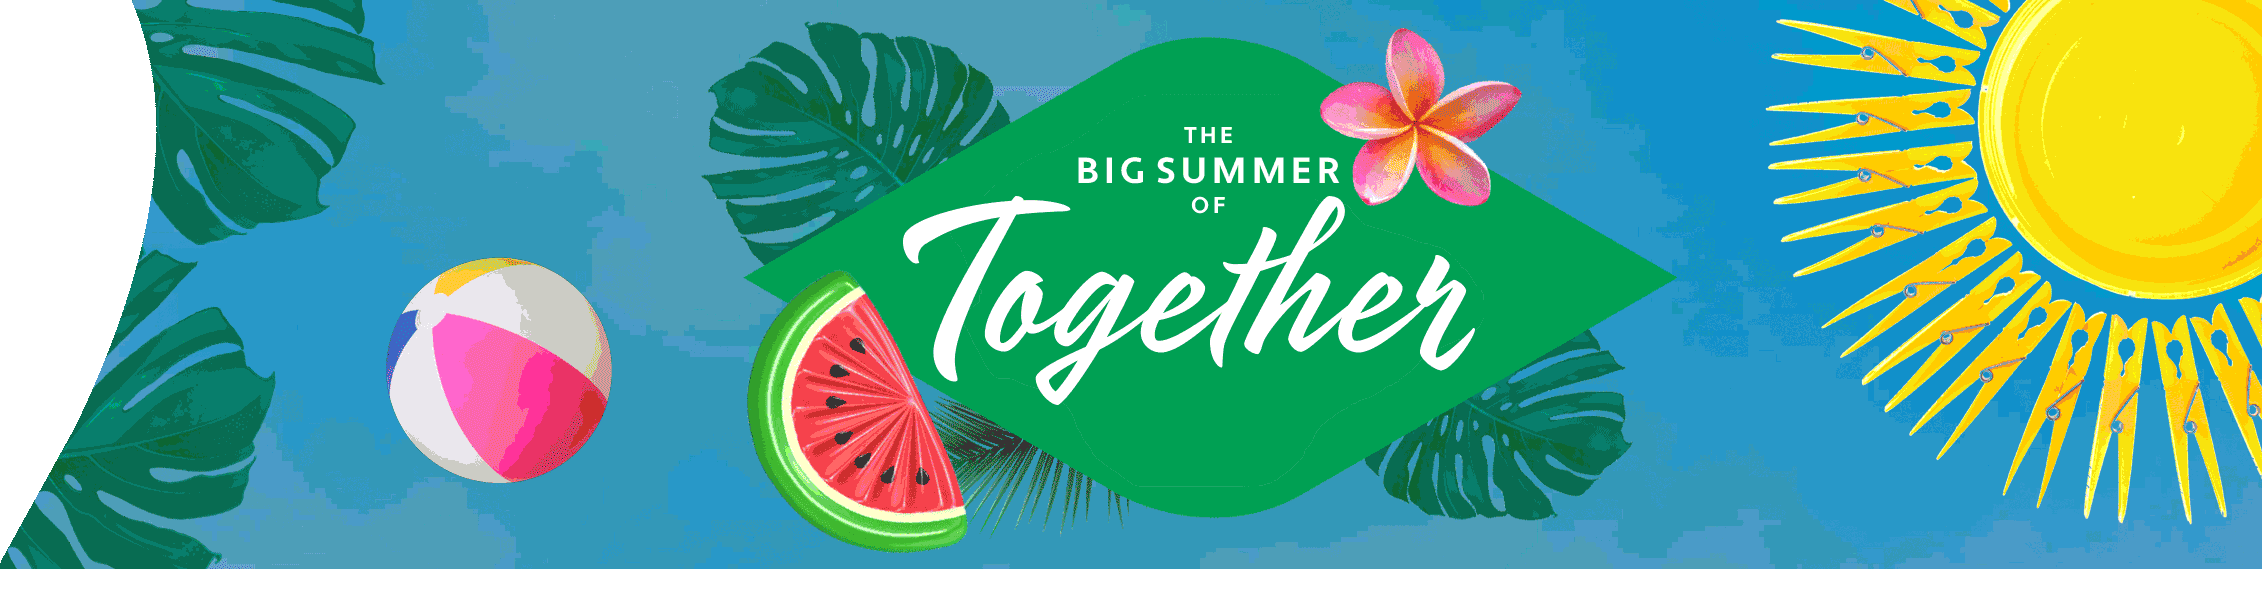 The Big Summer of Together